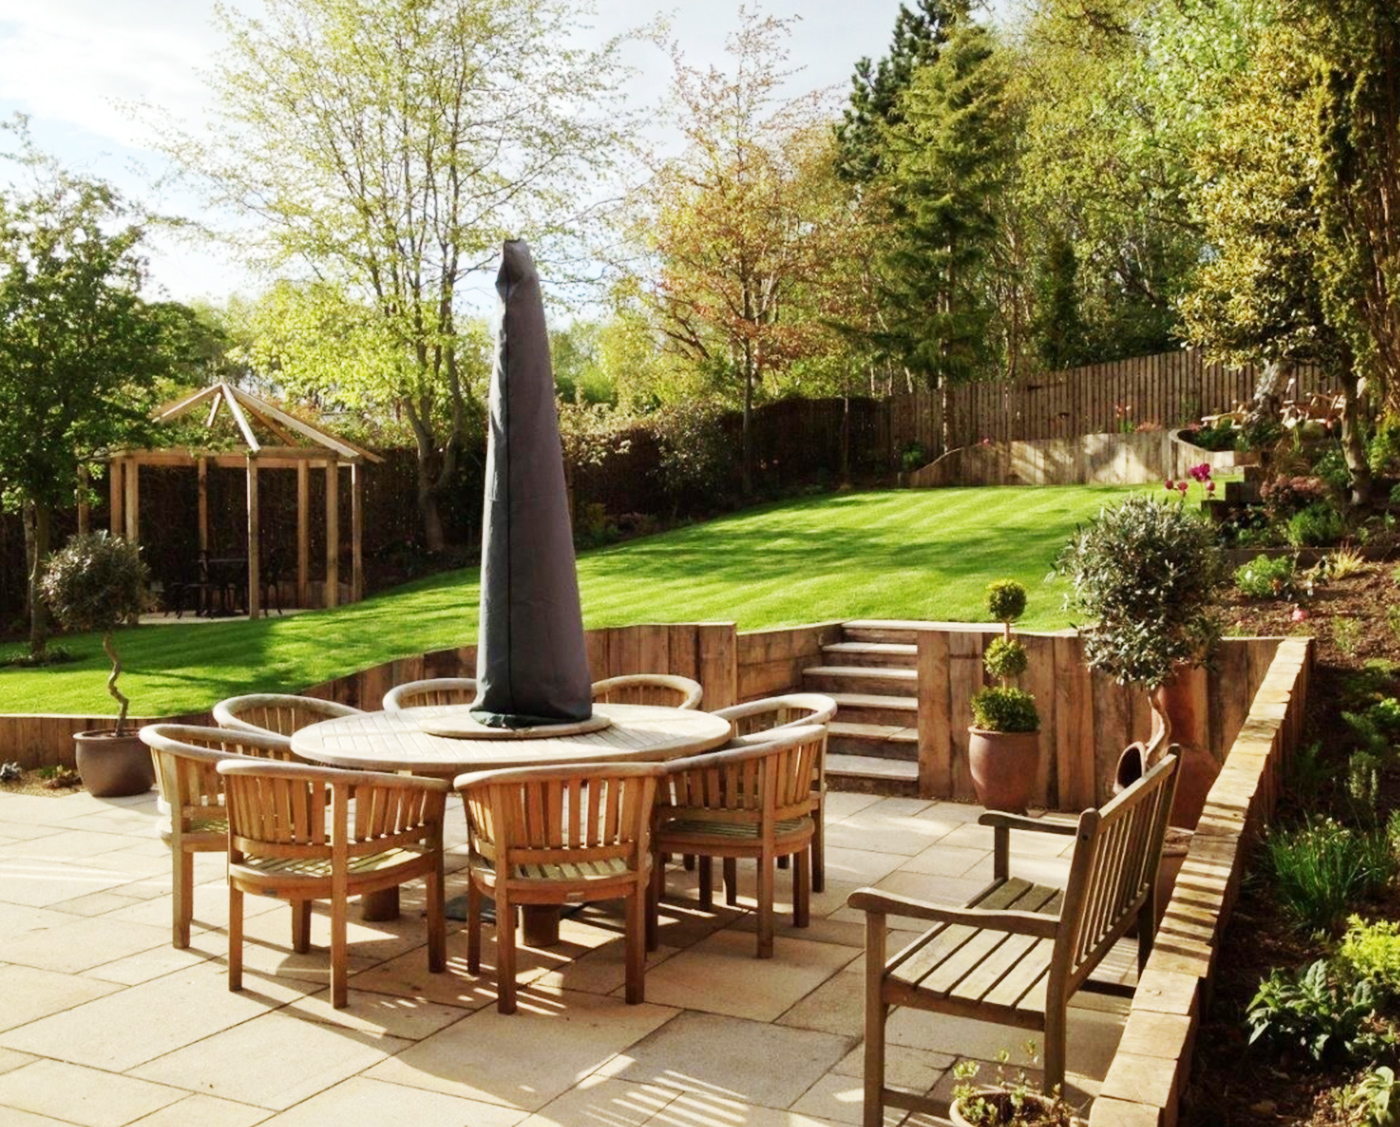 Landscape Gardener Wirral - Garden Designer Wirral - Outer Spaces UK